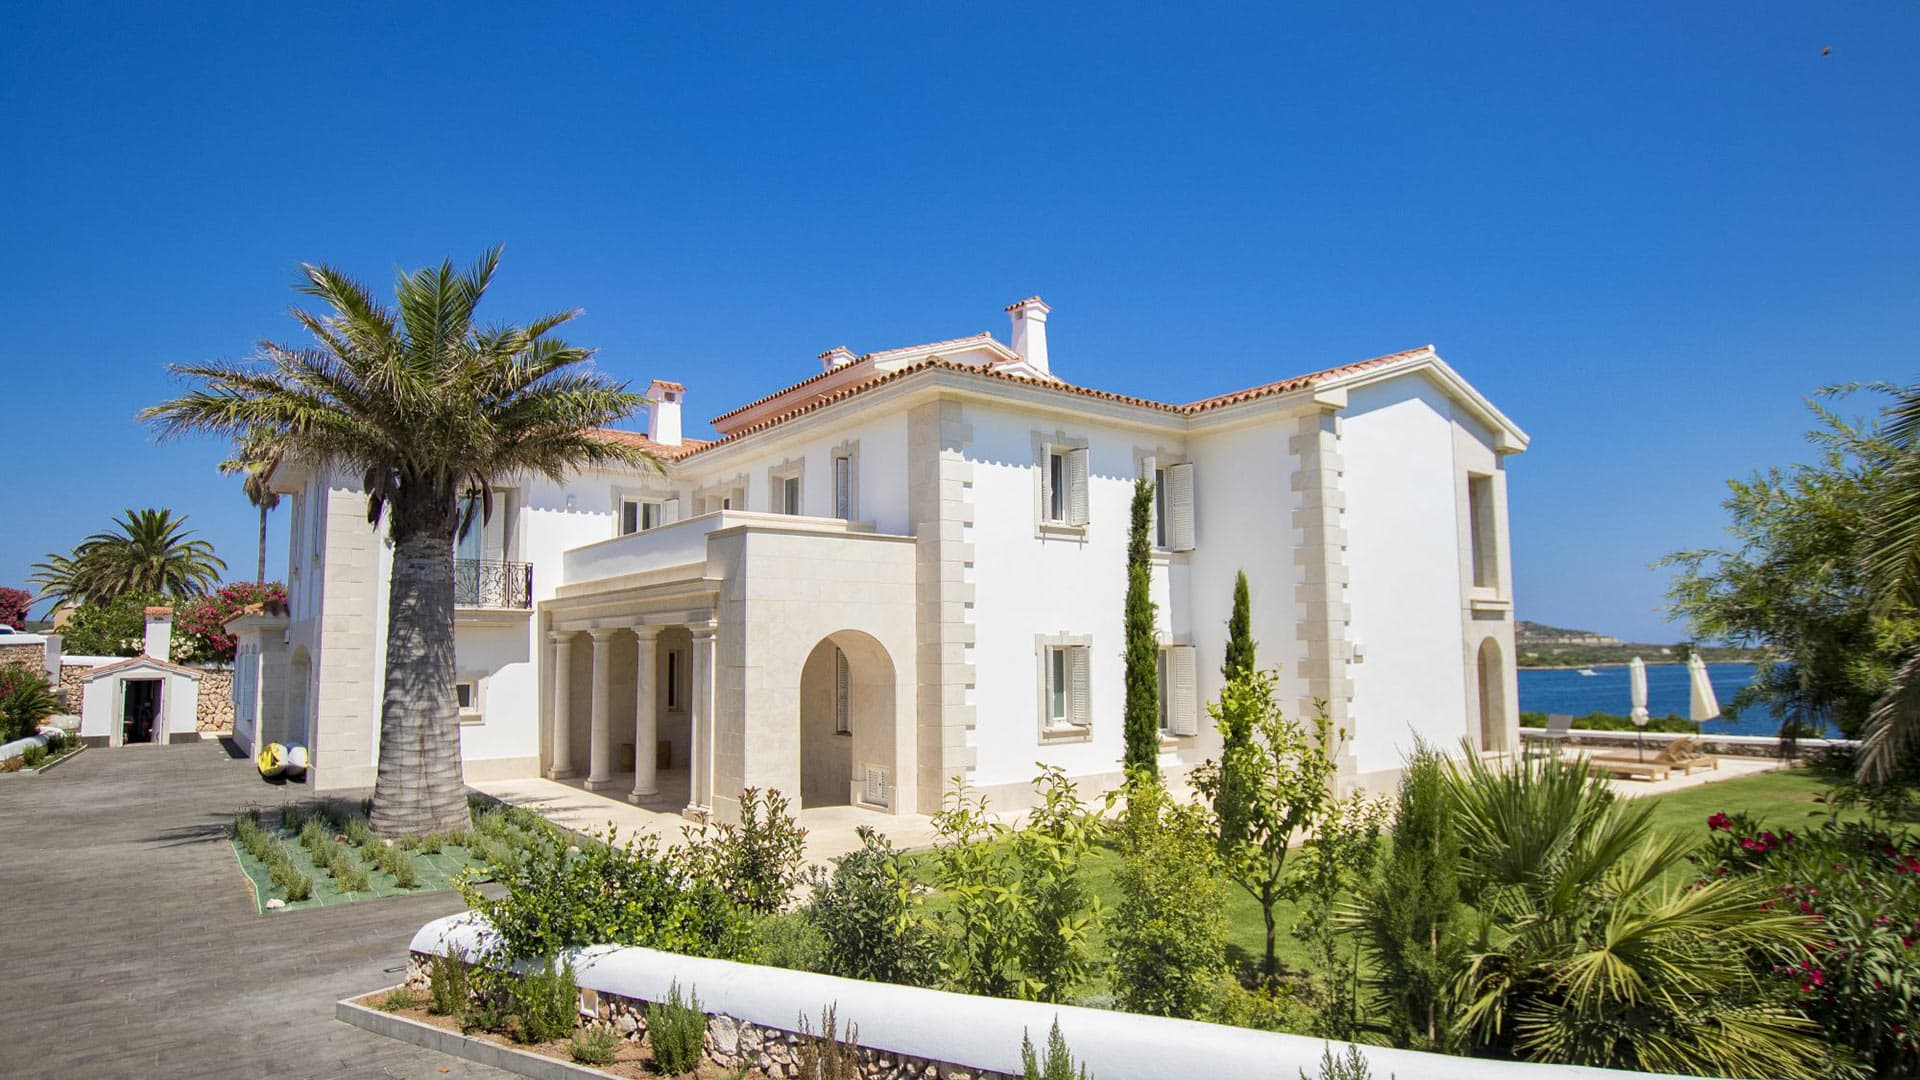 Villa Villa Manicienta, Rental in Menorca